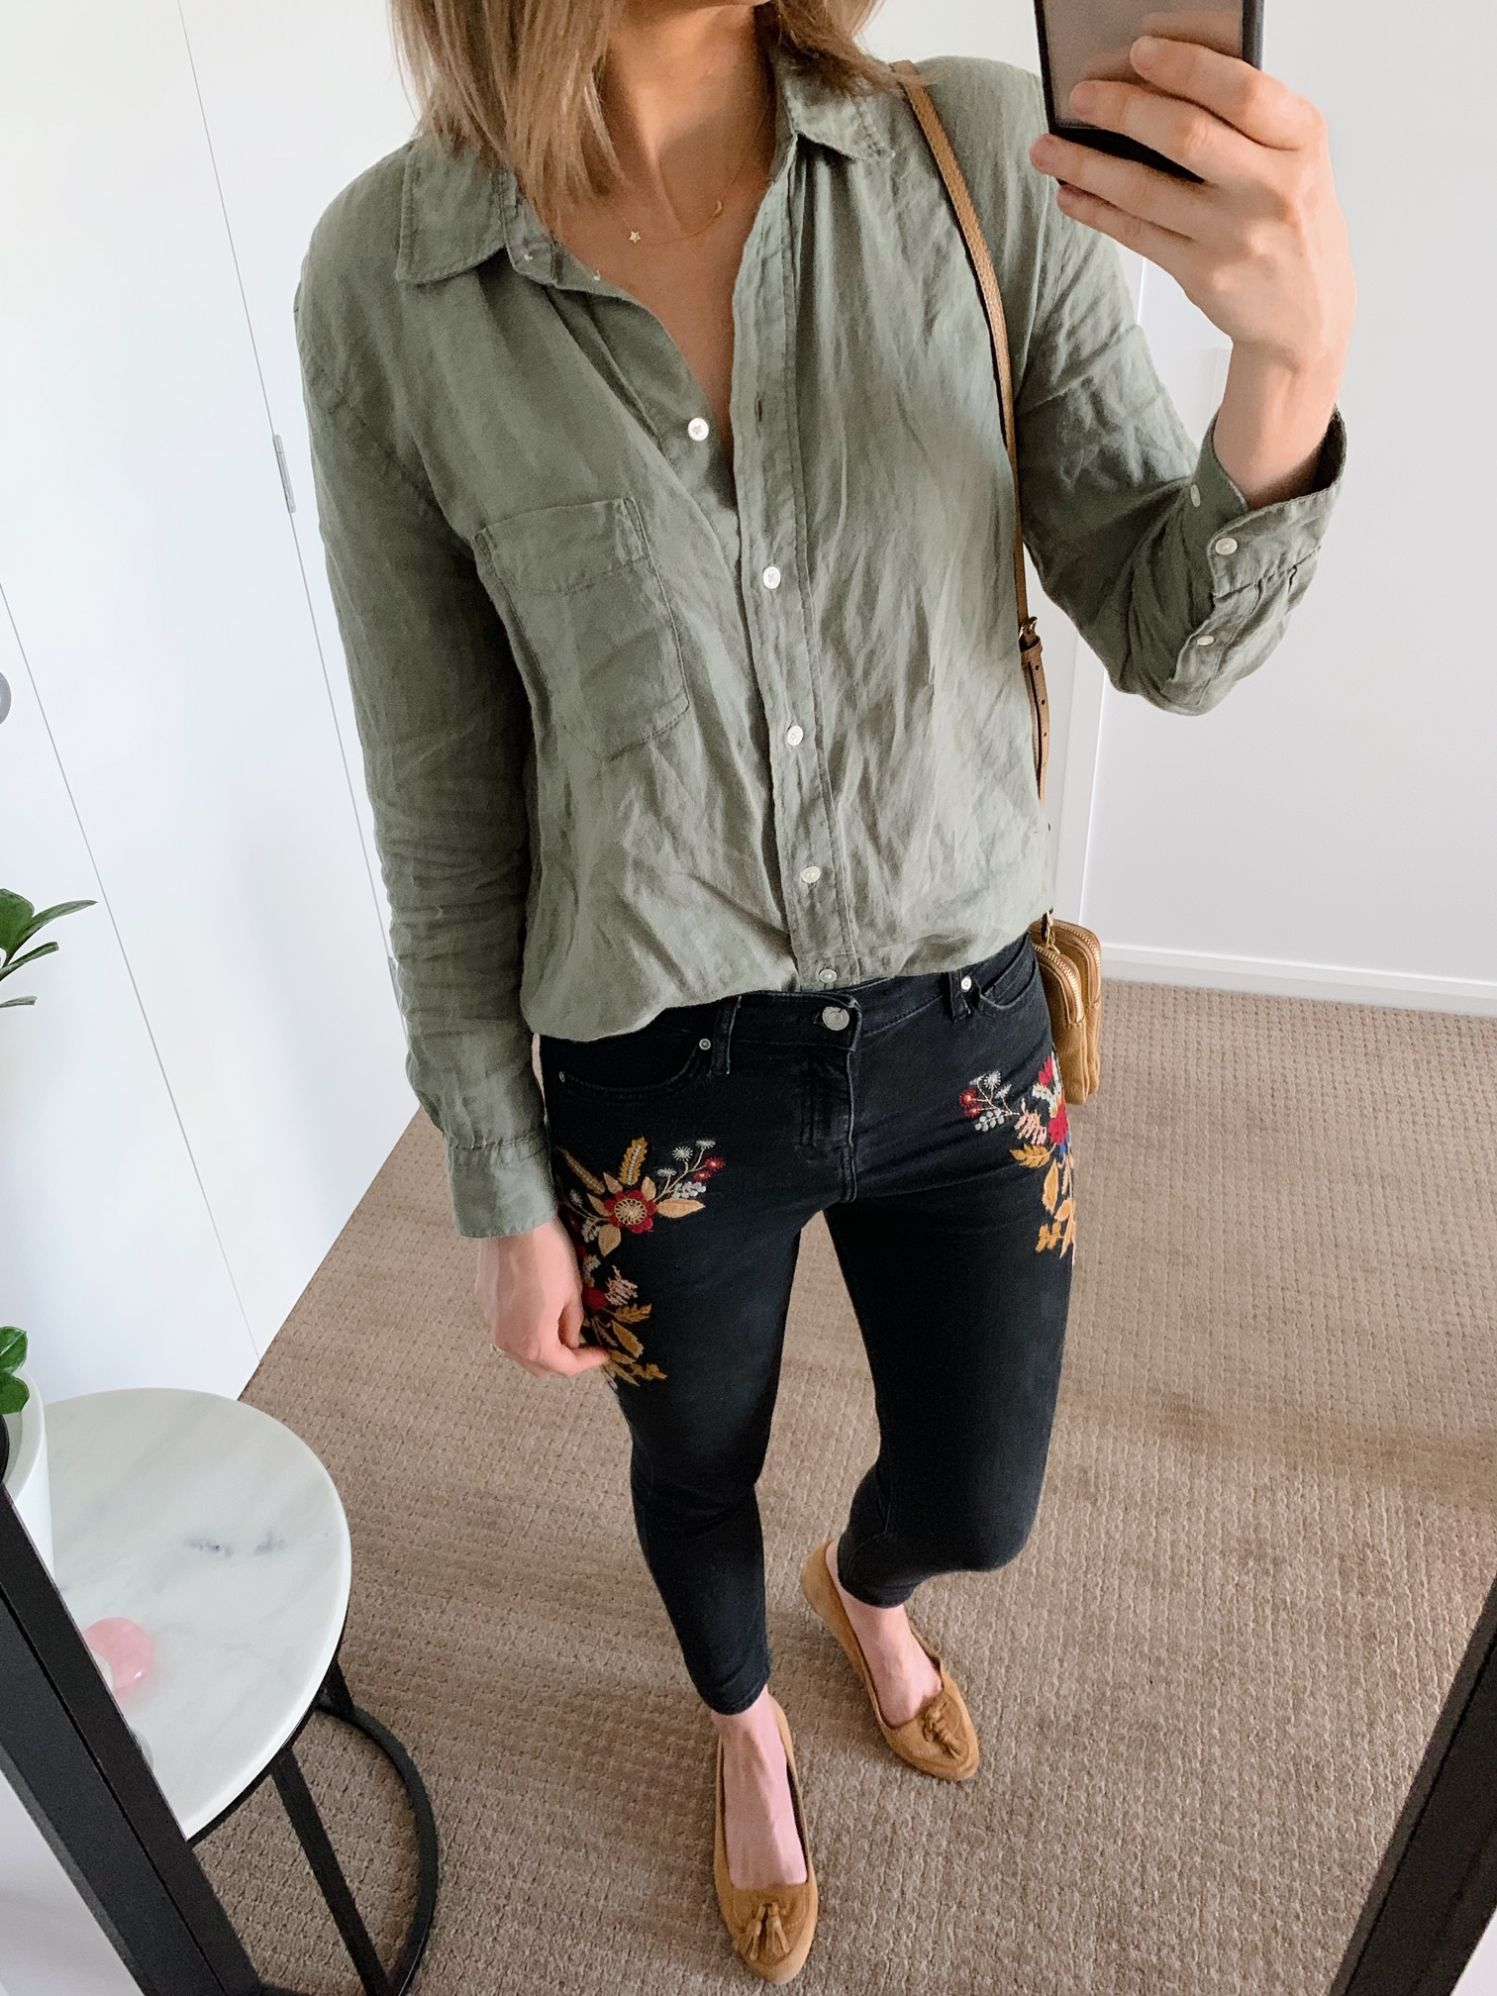 olive green linen shirt and embroidered topshop jeans fashion blogger outfit ideas pinterest boho outfit style lauren slade top usa blog